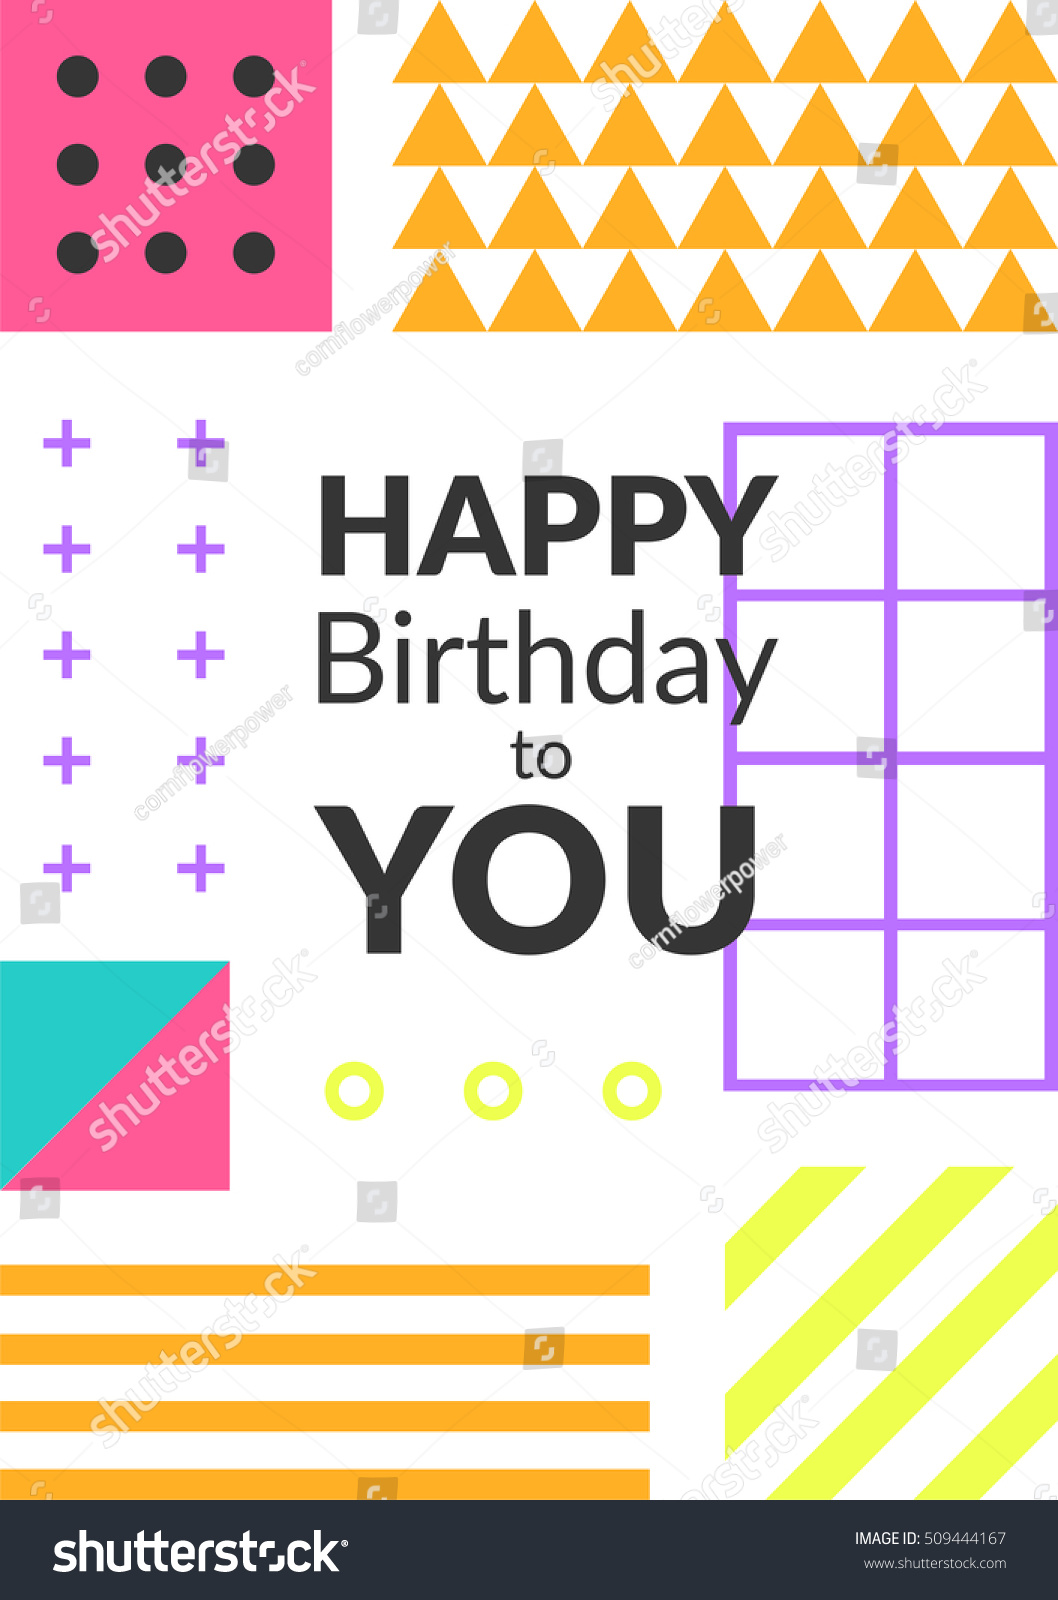 Nice birthday invitation websites ideas invitation card ideas pretty birthday invitation websites images invitation card ideas filmwisefo Image collections